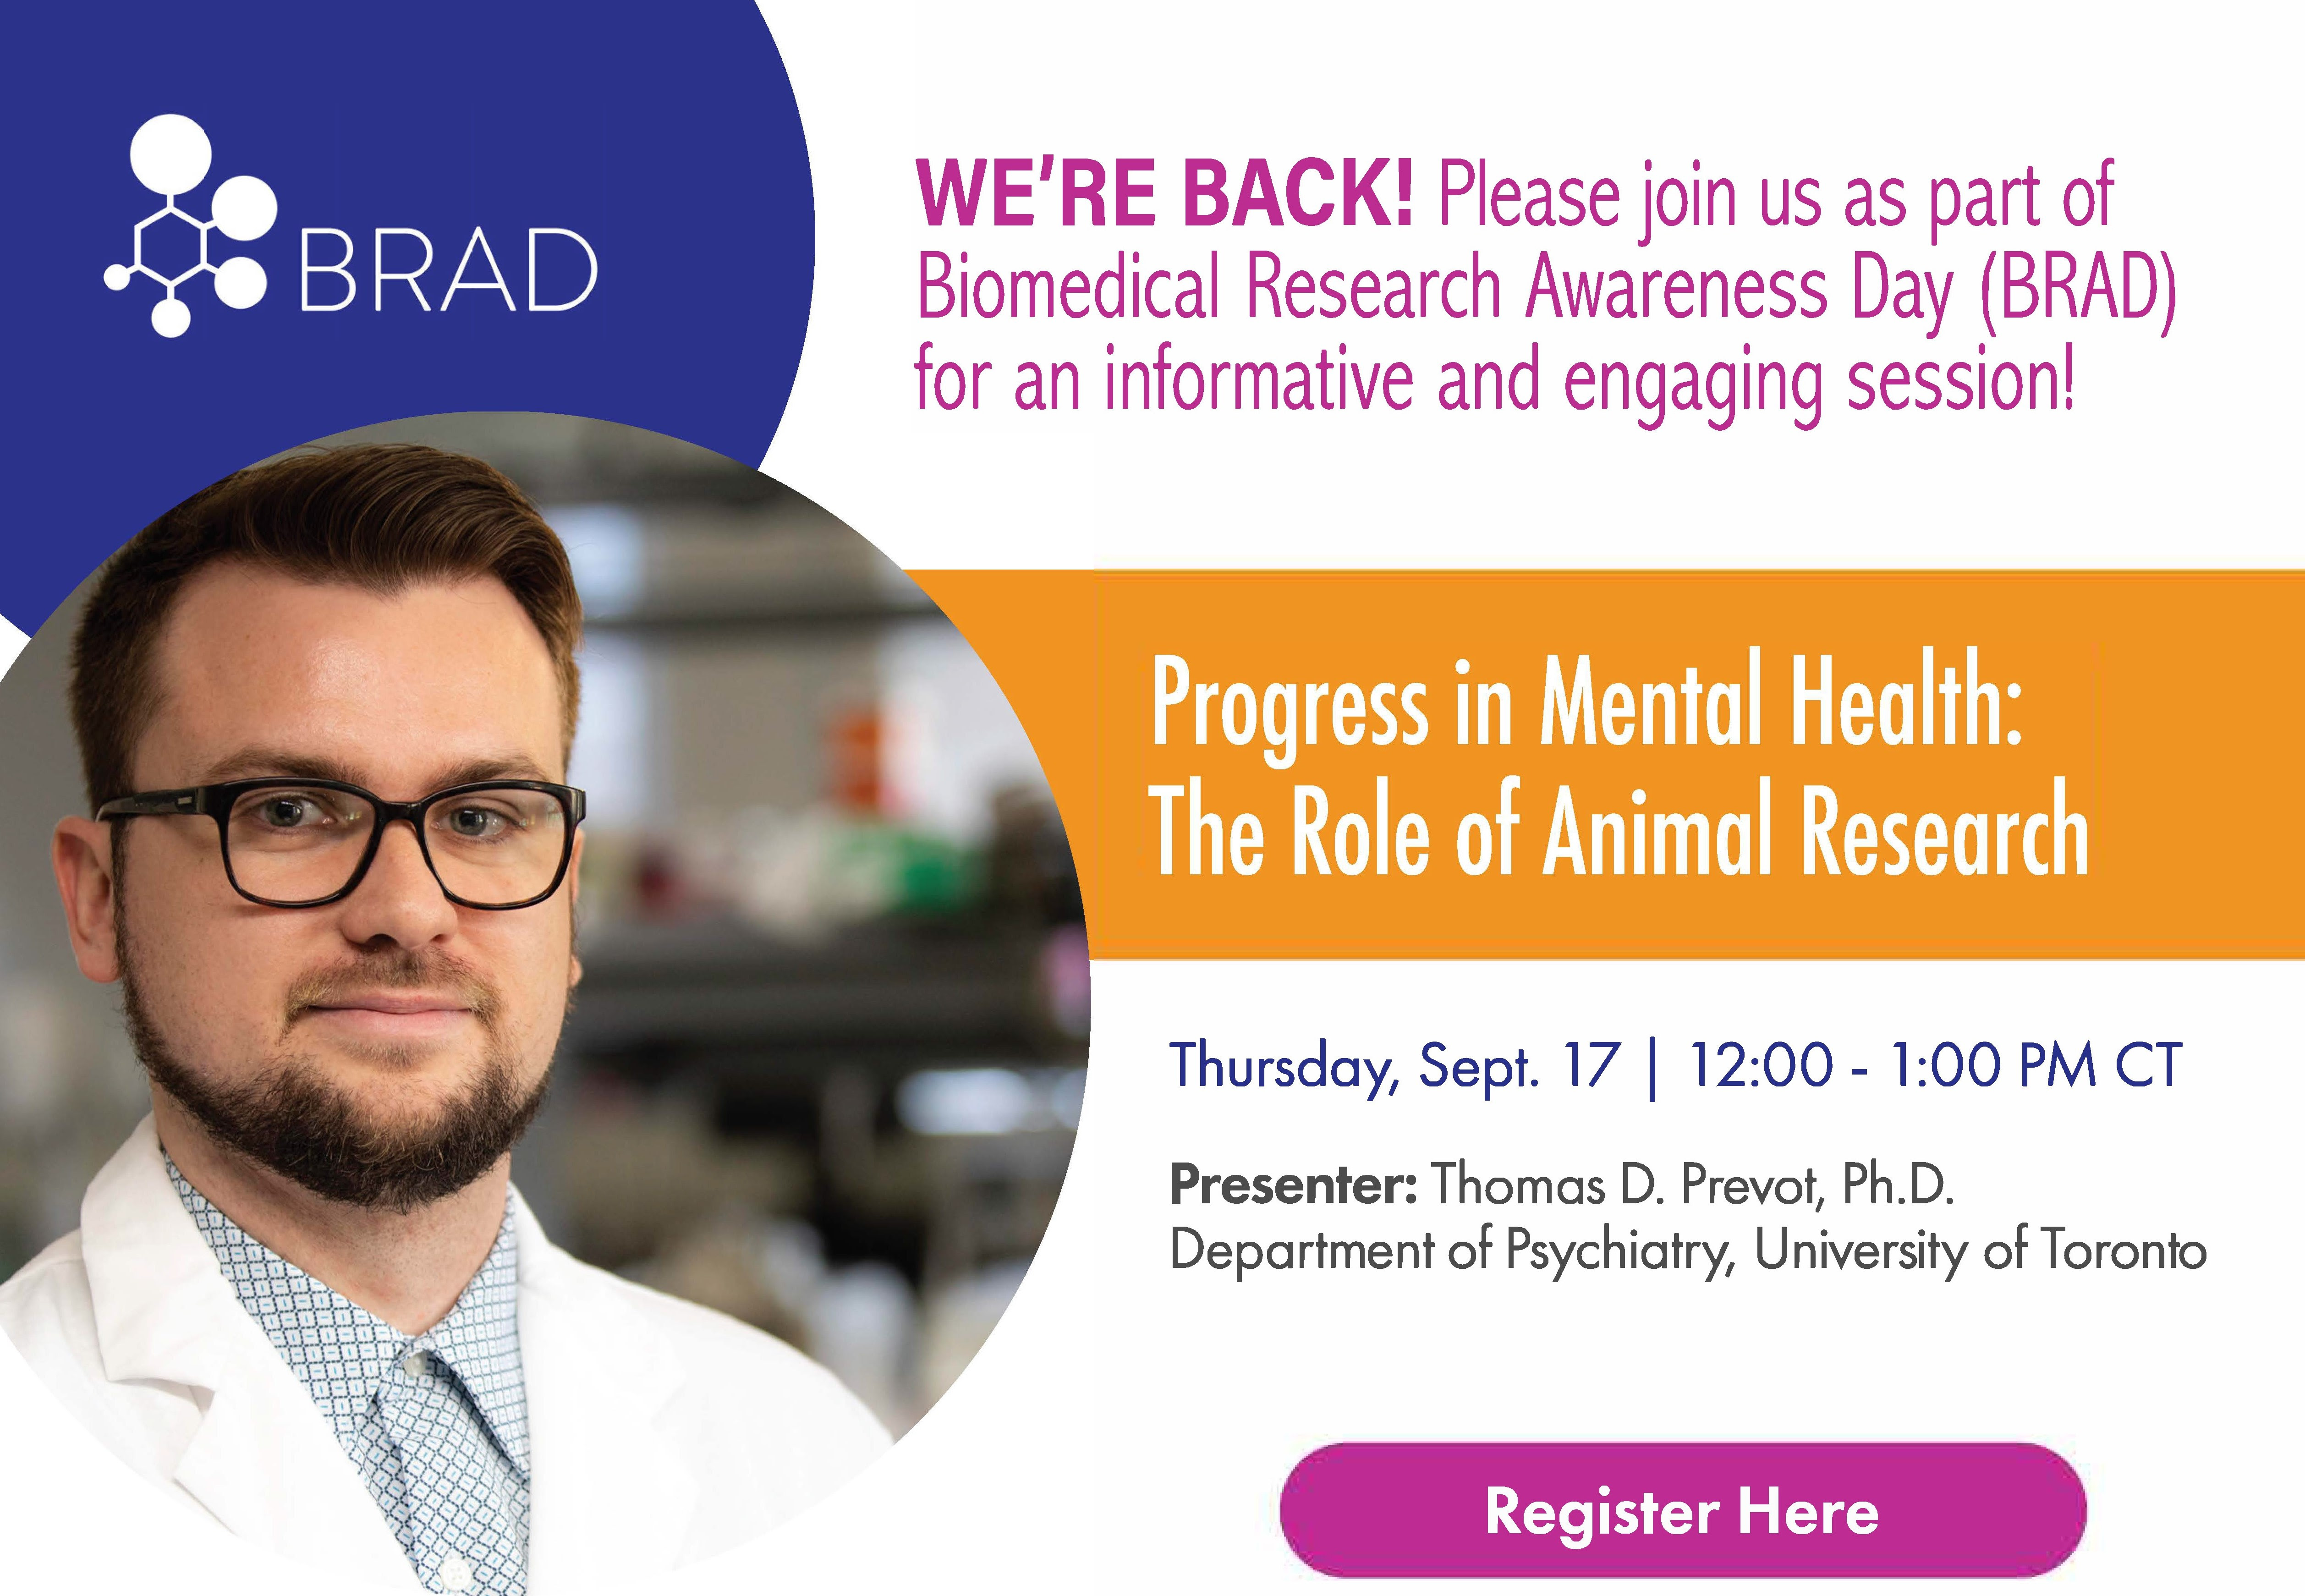 Click here to Register! Please join us as a part of Biomedical Research Awareness Day (BRAD) for an informative and engaging session! Progress in Mental Health: The Role of Animal Research. Thursday, Sept. 17. 12:00-1:00 PM CT. Presenter: Thomas D. Prevot, Ph.D. Department of Psychiatry, University of Toronto